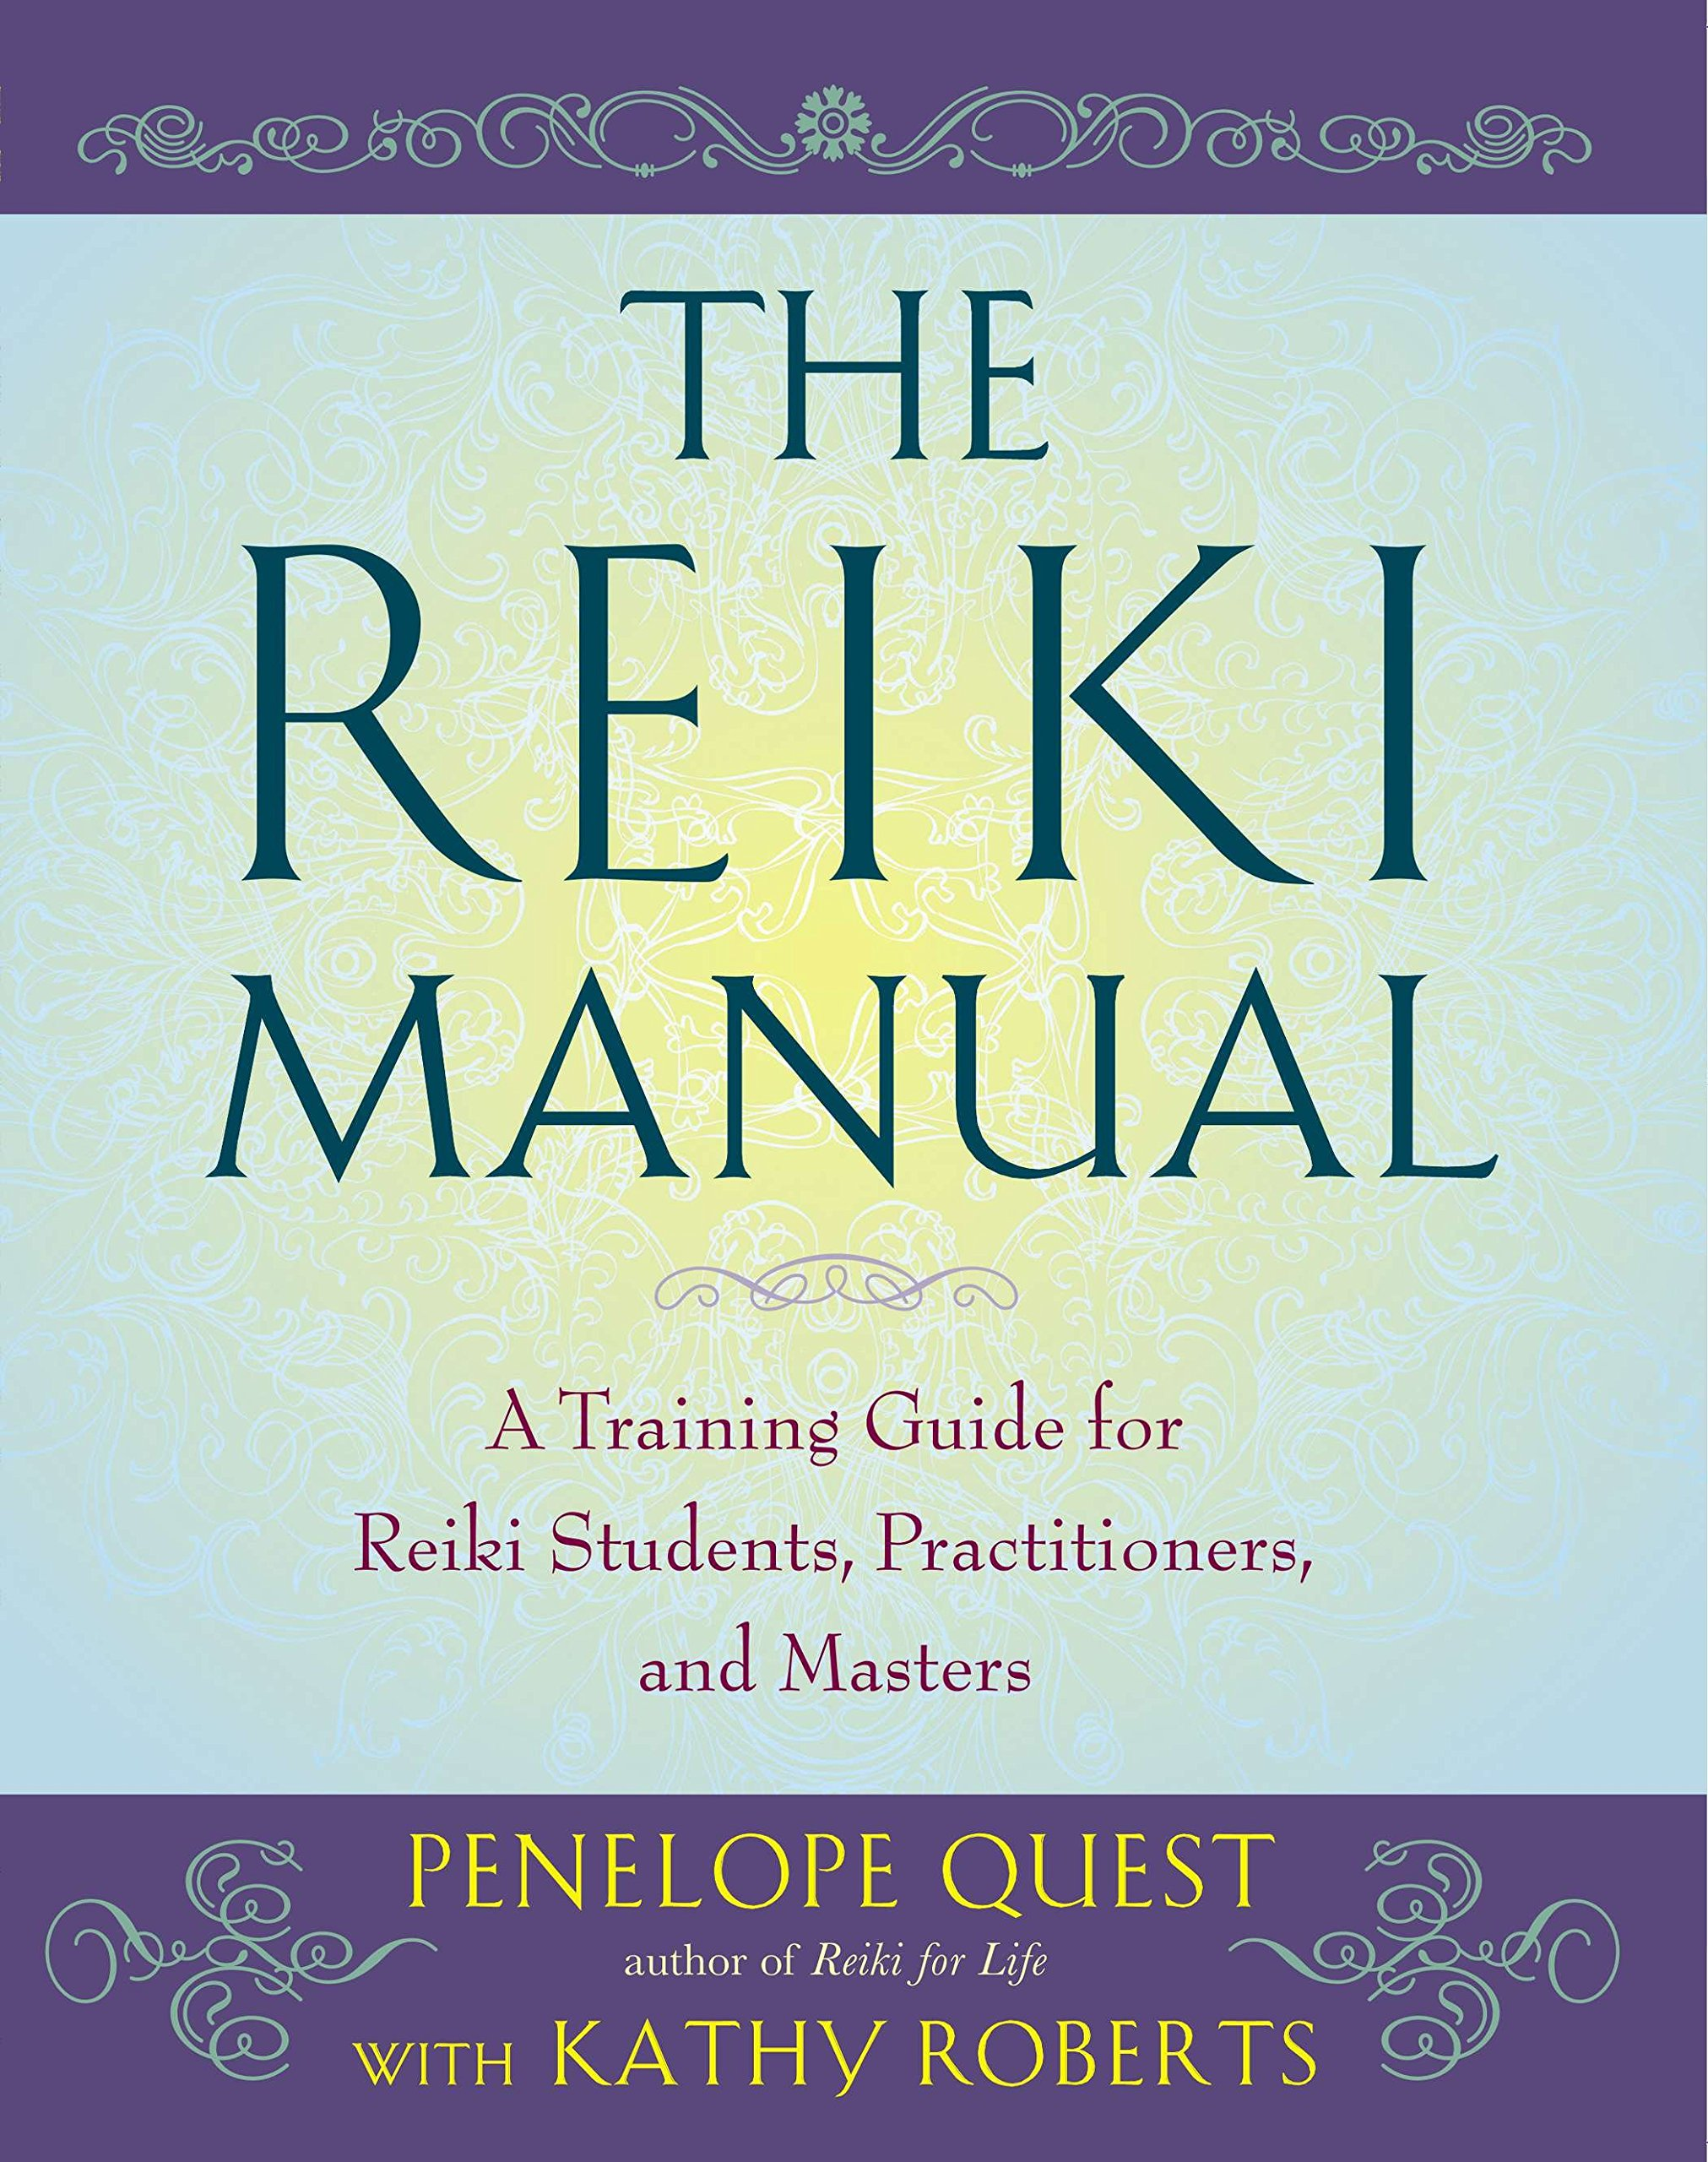 The Reiki Manual: A Training Guide for Reiki Students, Practitioners, and  Masters: Penelope Quest, Kathy Roberts: 9781585429042: Amazon.com: Books